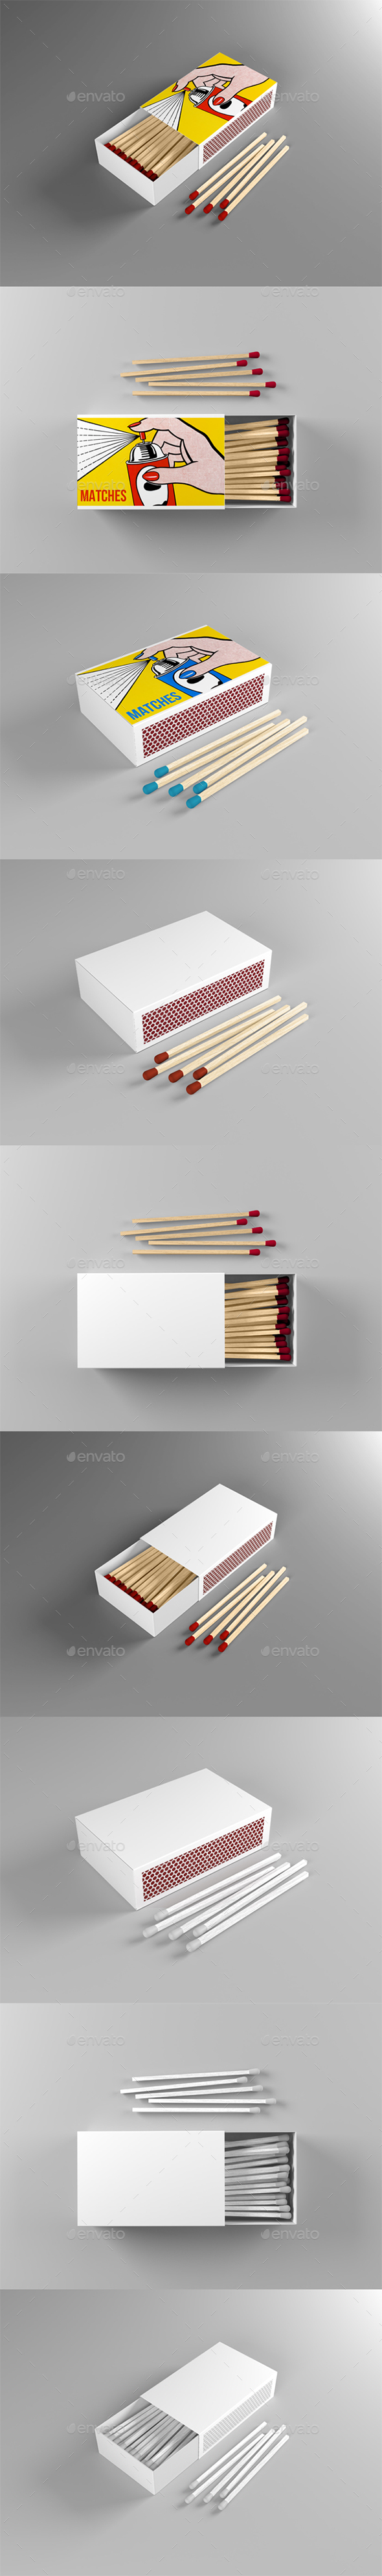 GraphicRiver Match Box Mock-up 21128257